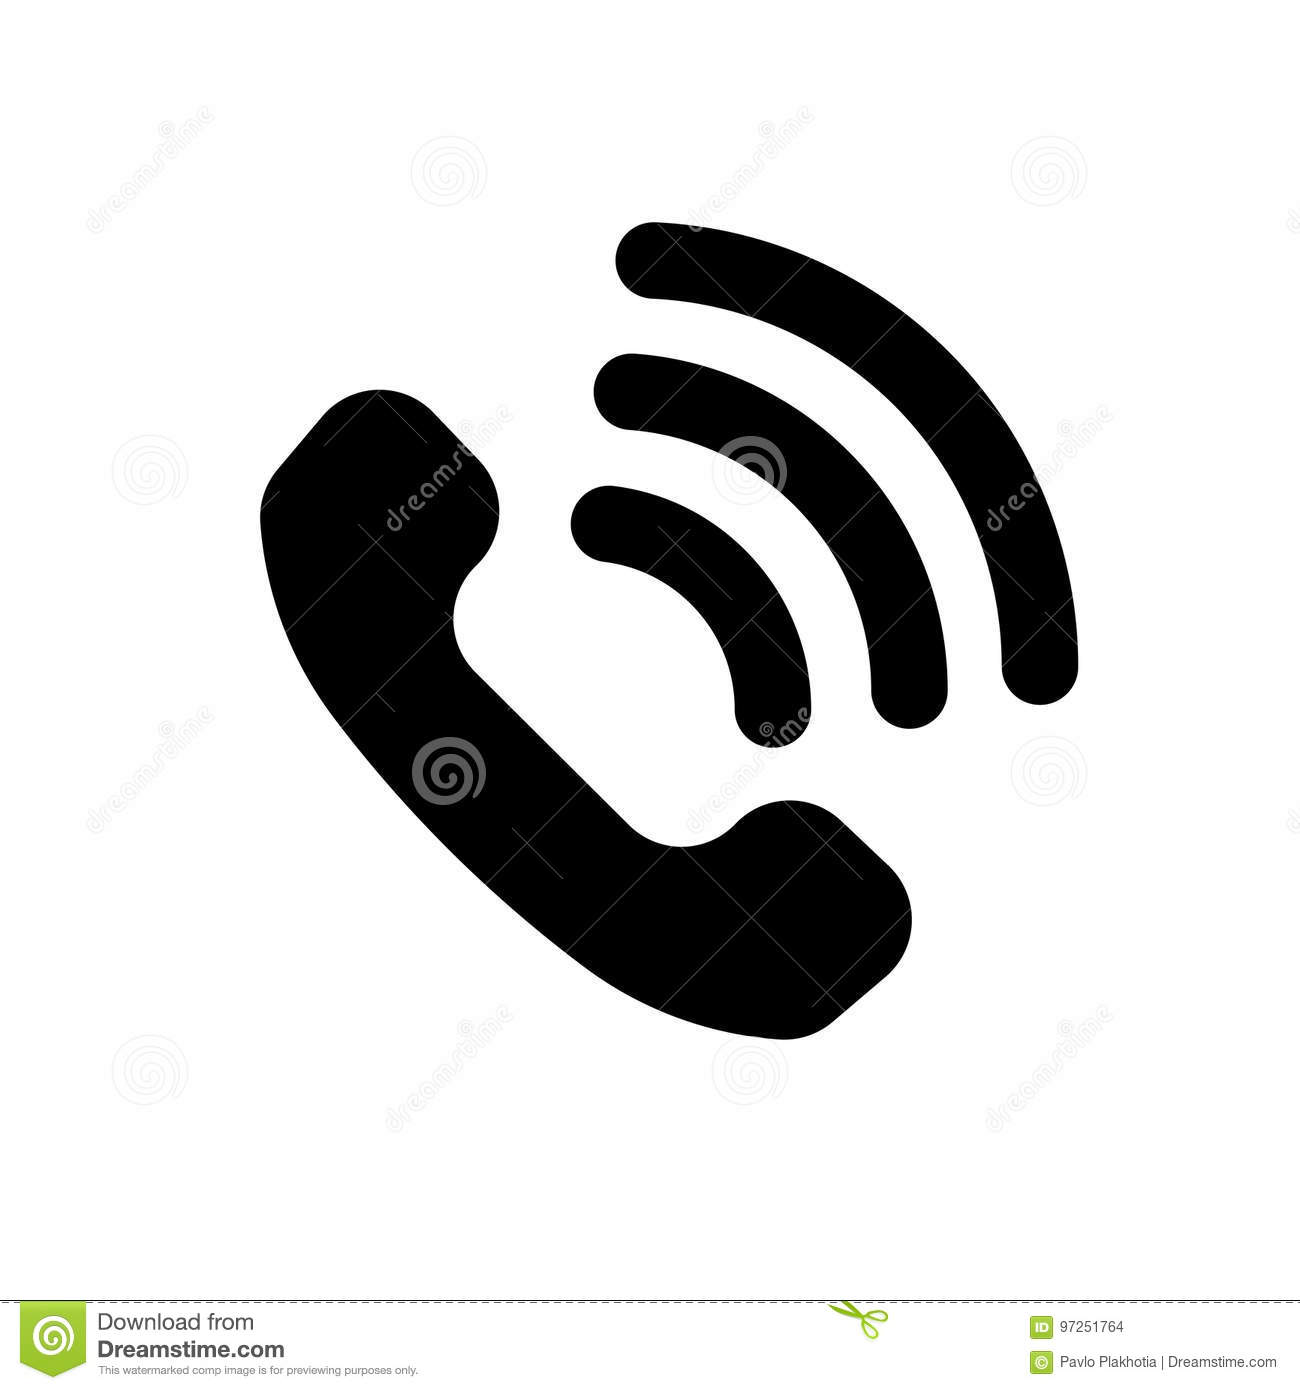 Phone and lines black icon stock vector  Illustration of